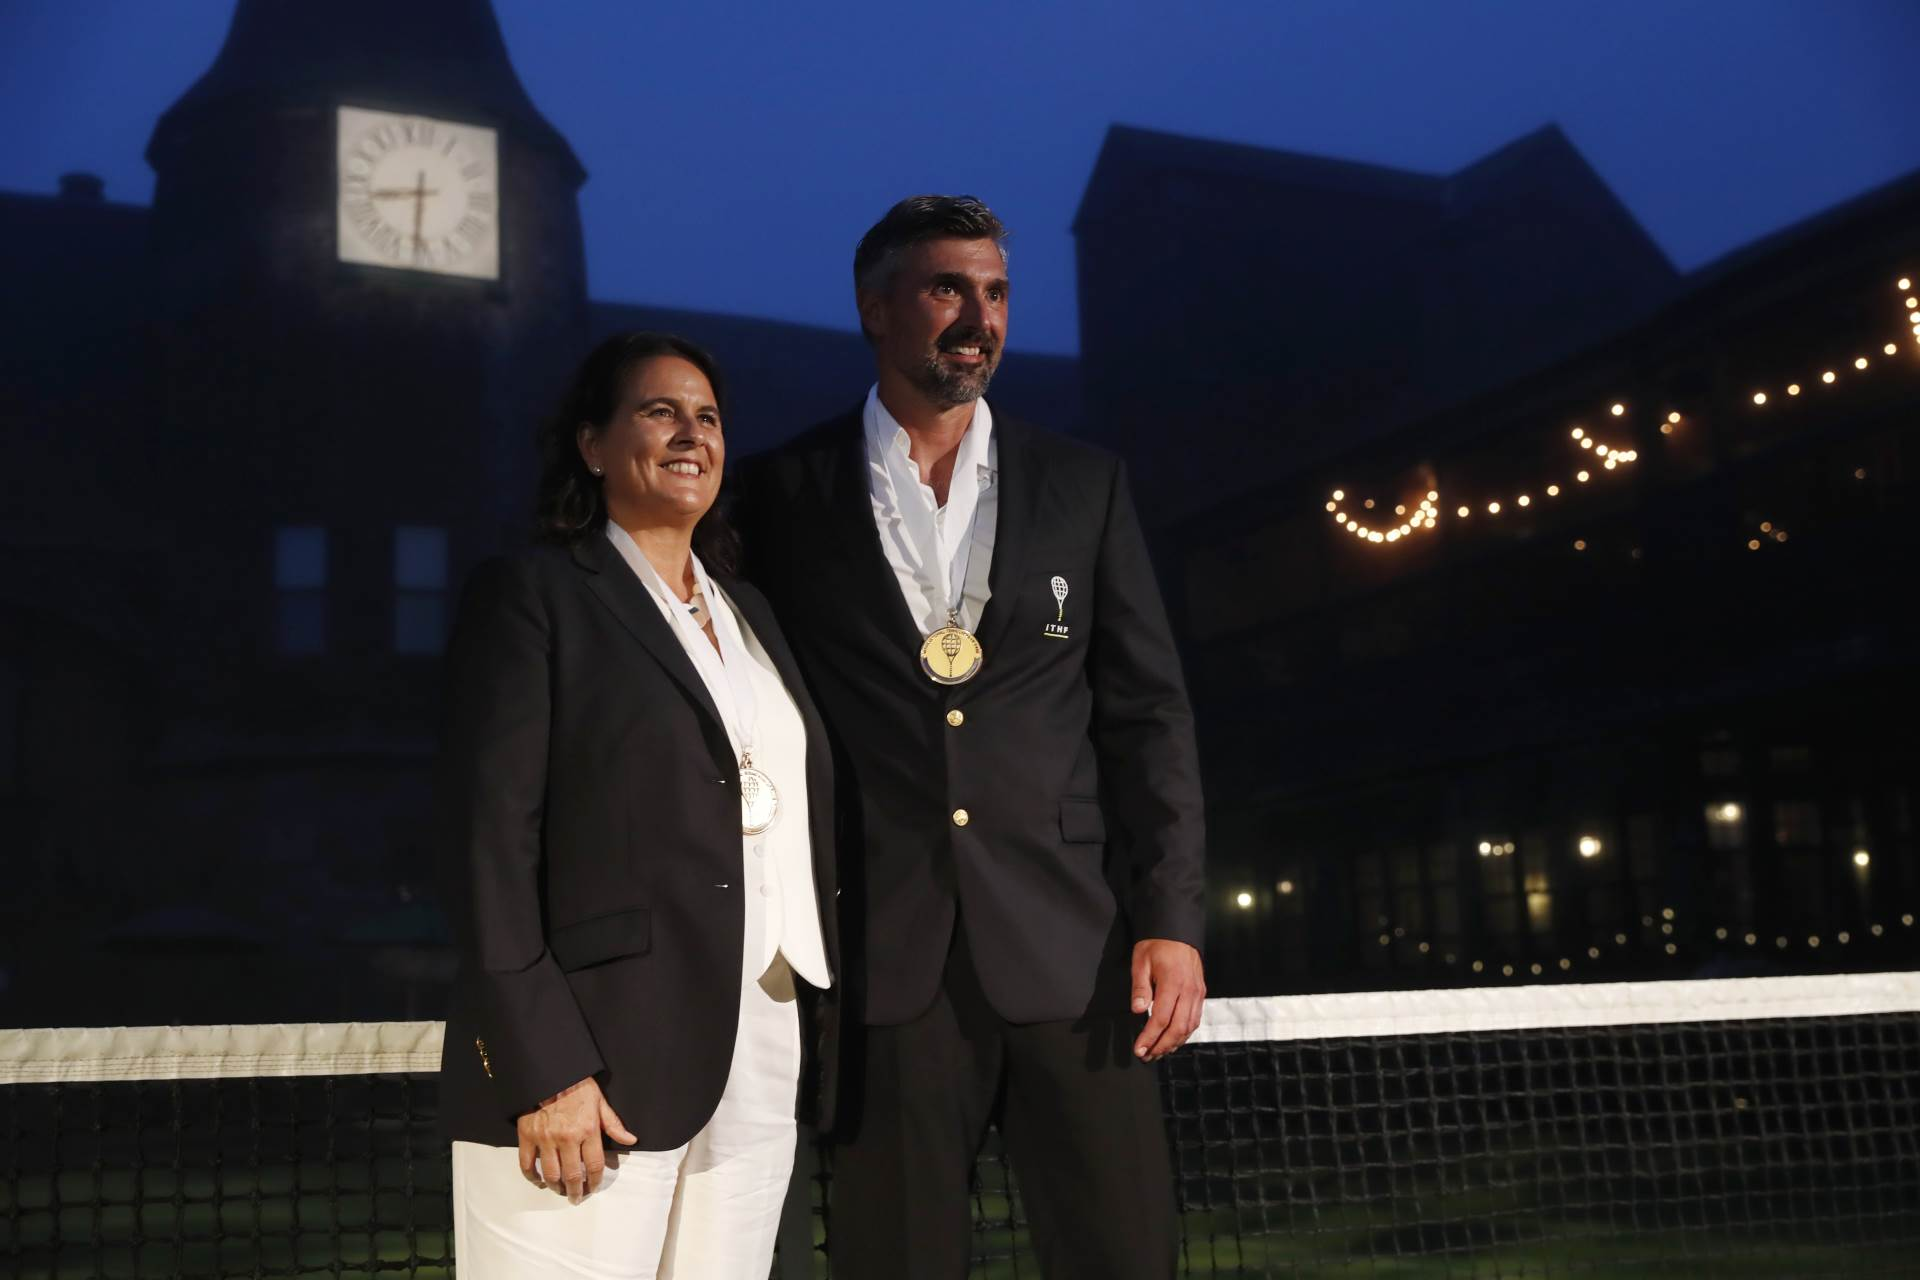 Conchita Martinez, left, and Goran Ivanisevic pose after being inducted into the International Tennis Hall of Fame, Saturday, July 17, 2021, in Newport, R.I. (AP Photo/Michael Dwyer)